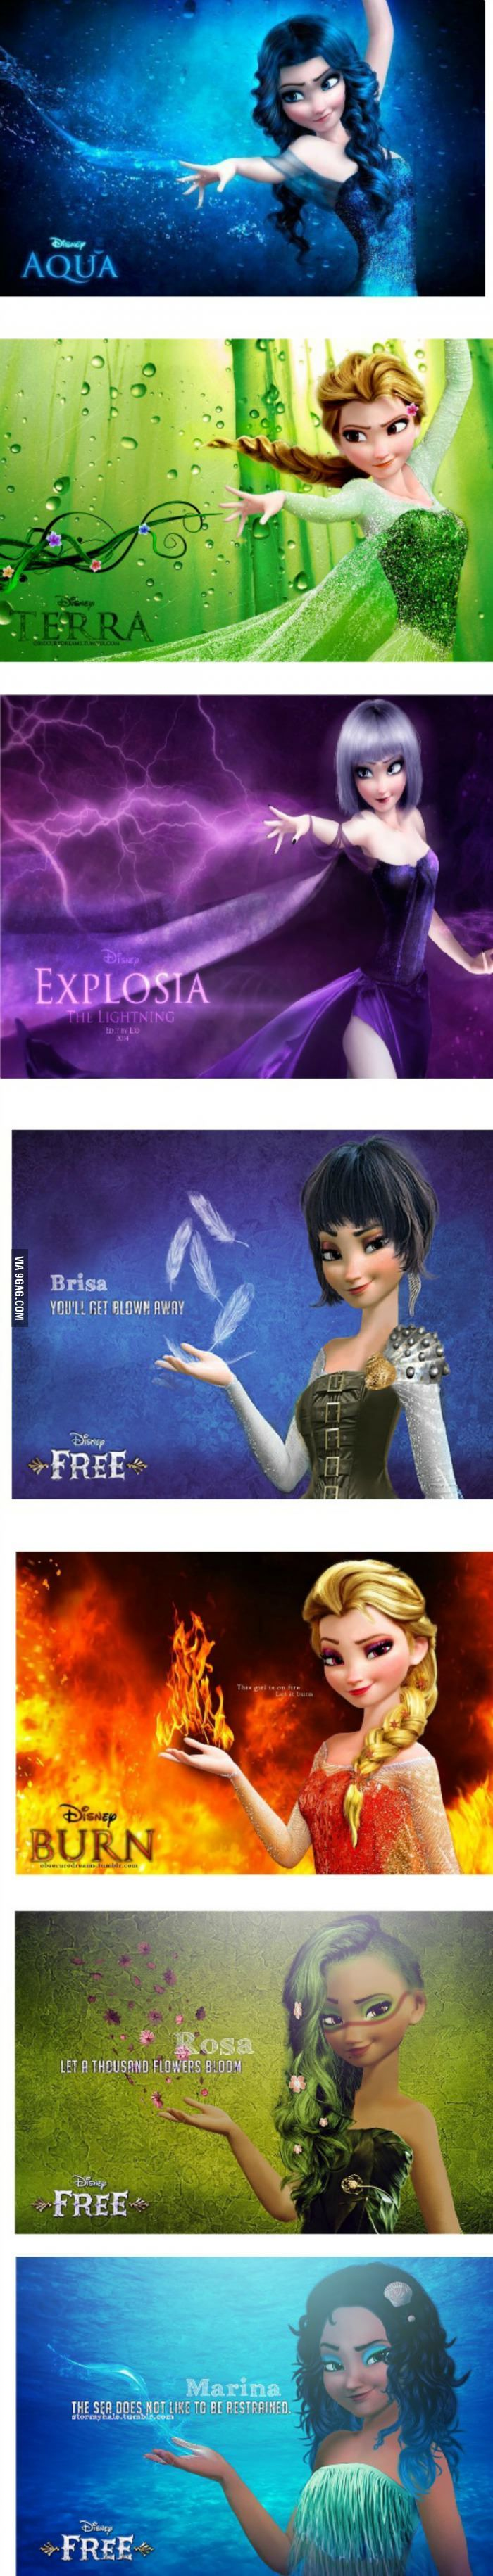 They should make a movie with all these characters combined along with Elsa: